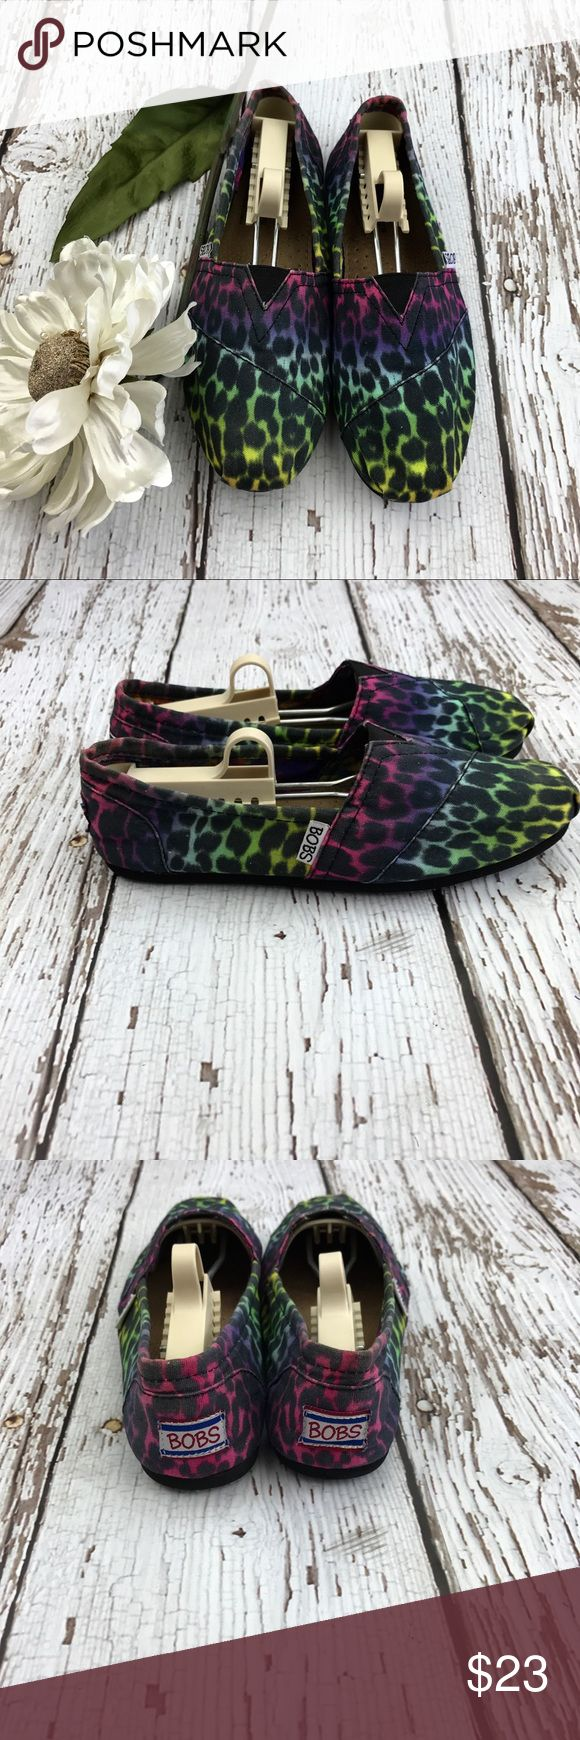 💕SALE💕Bobs Sketchers Multi Colored Slip on Shoes Fabulous 💕Bobs Sketchers Multi Colored Slip on Shoes Like New Bobs Shoes Flats & Loafers